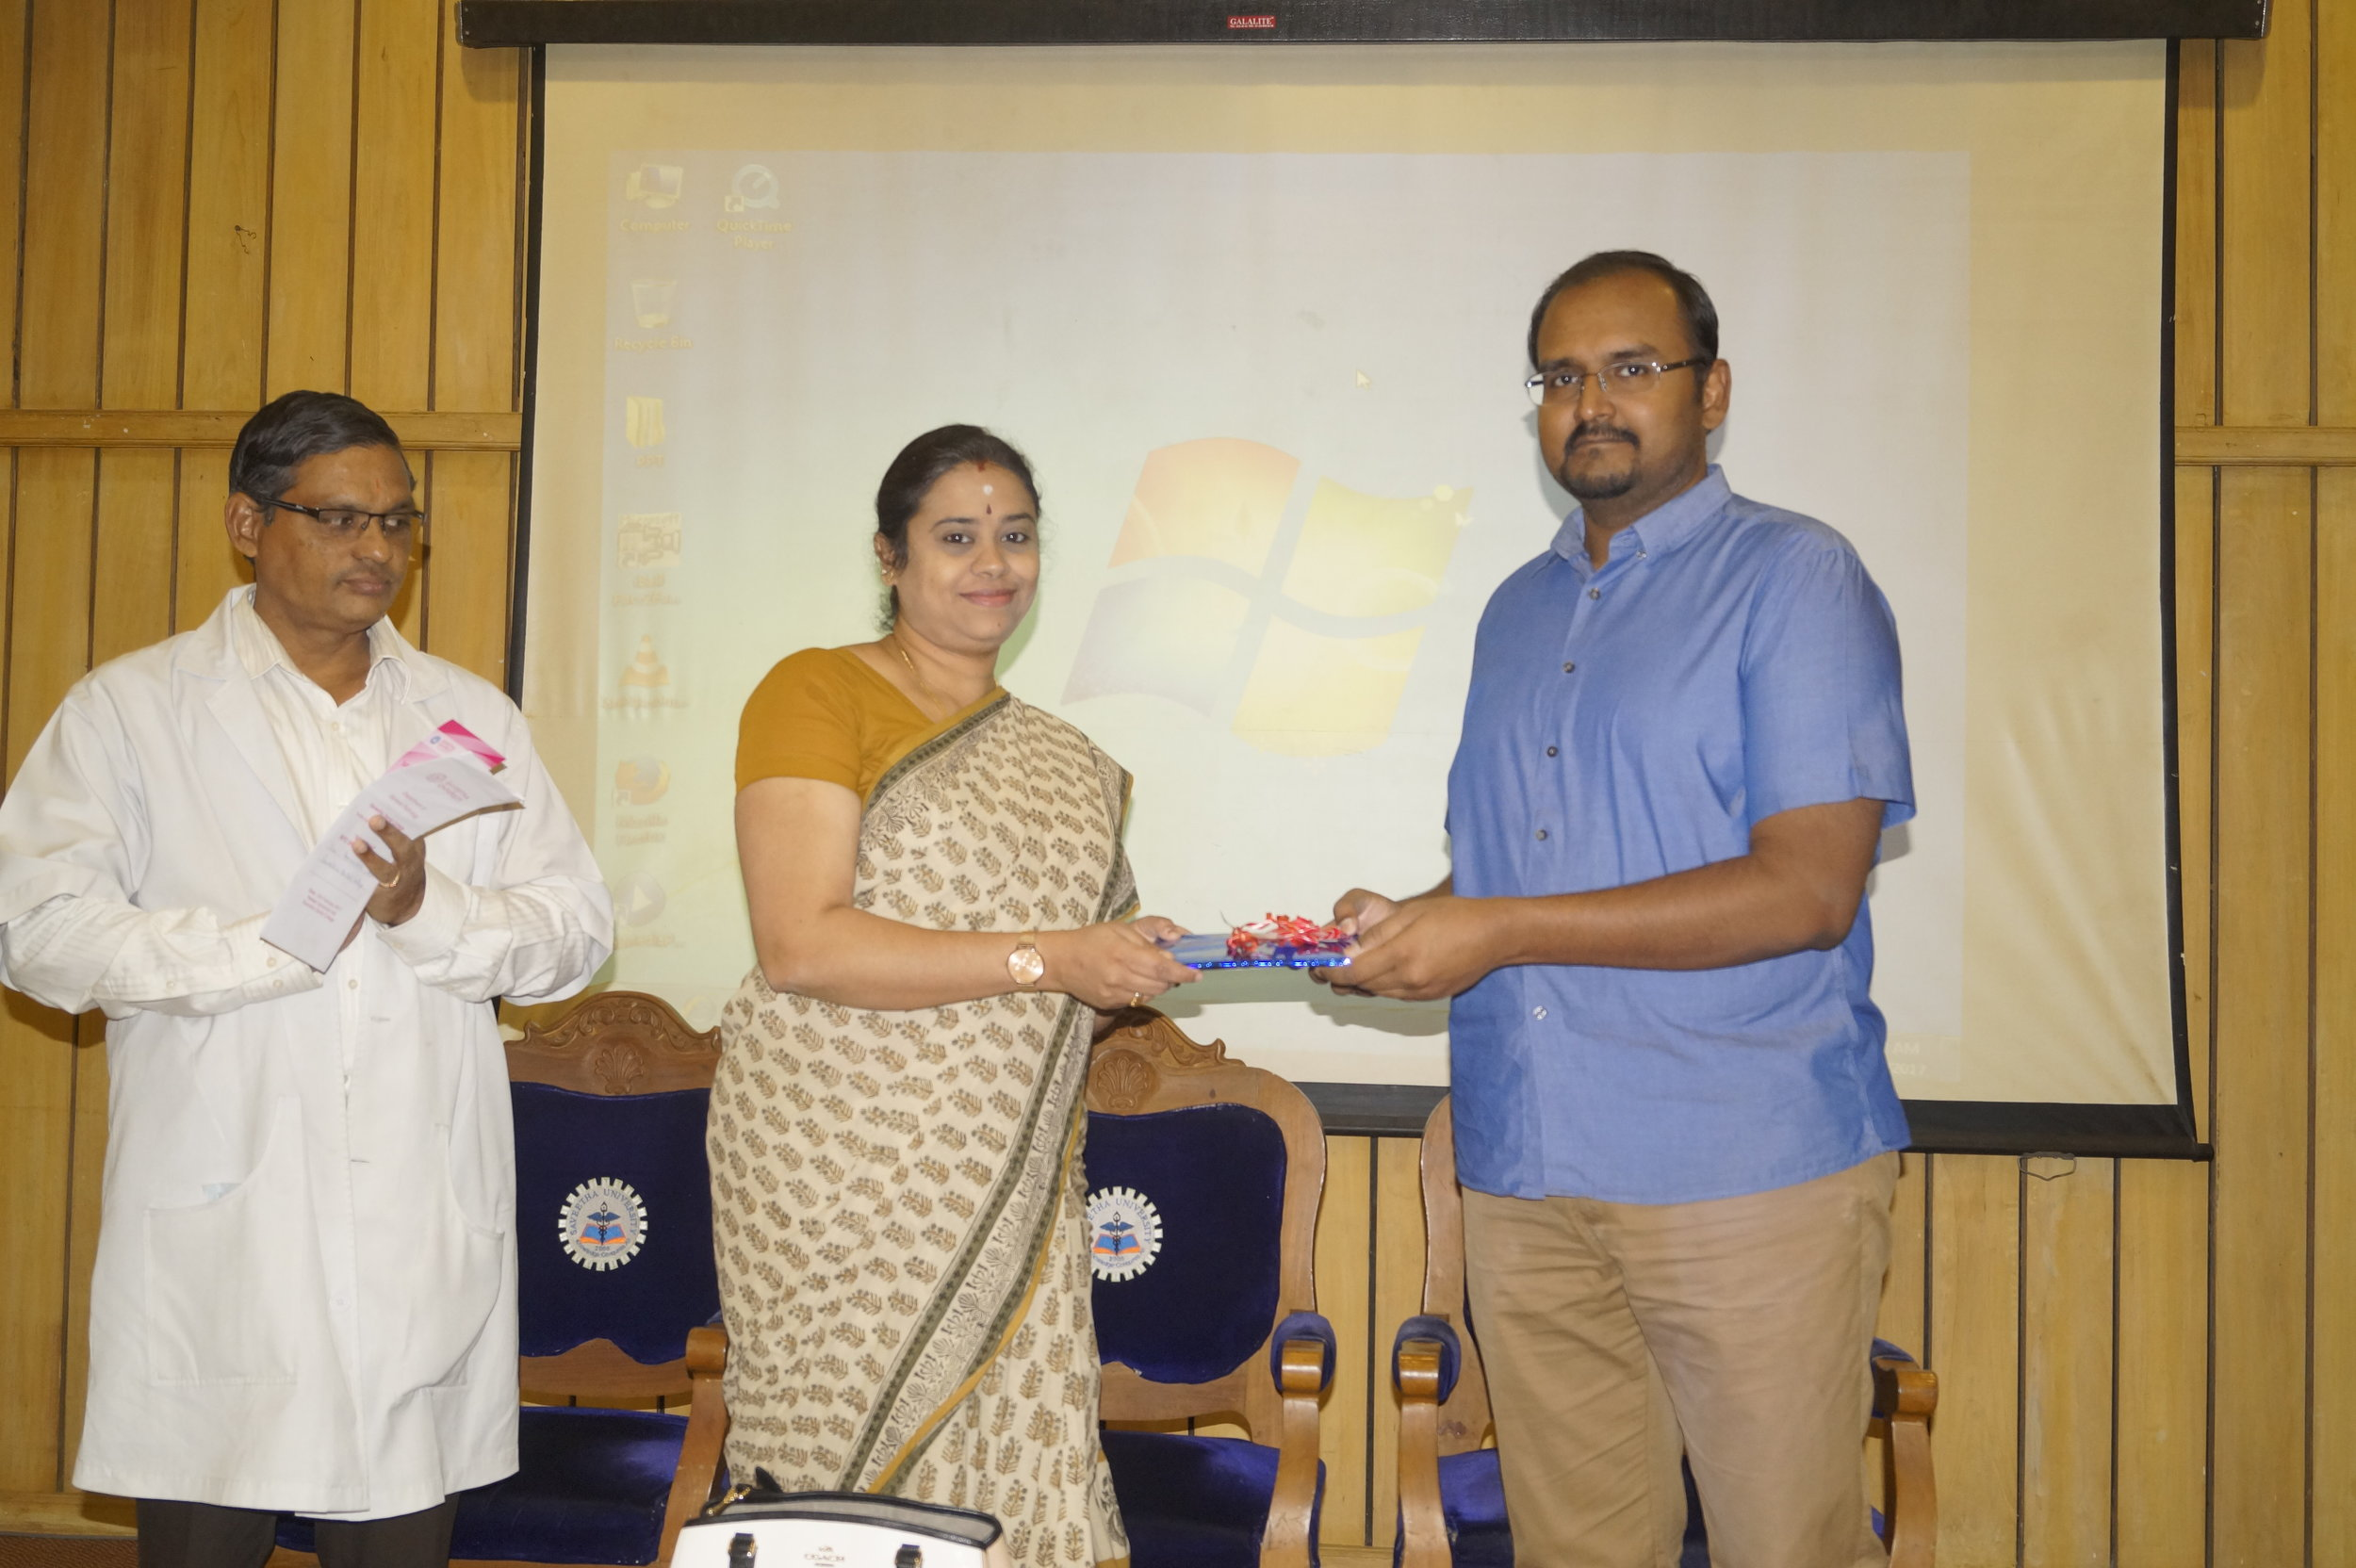 Our Director of academics felicitating the Chief Guest Dr. Vijayalakshmi, Adyar Cancer Institute.